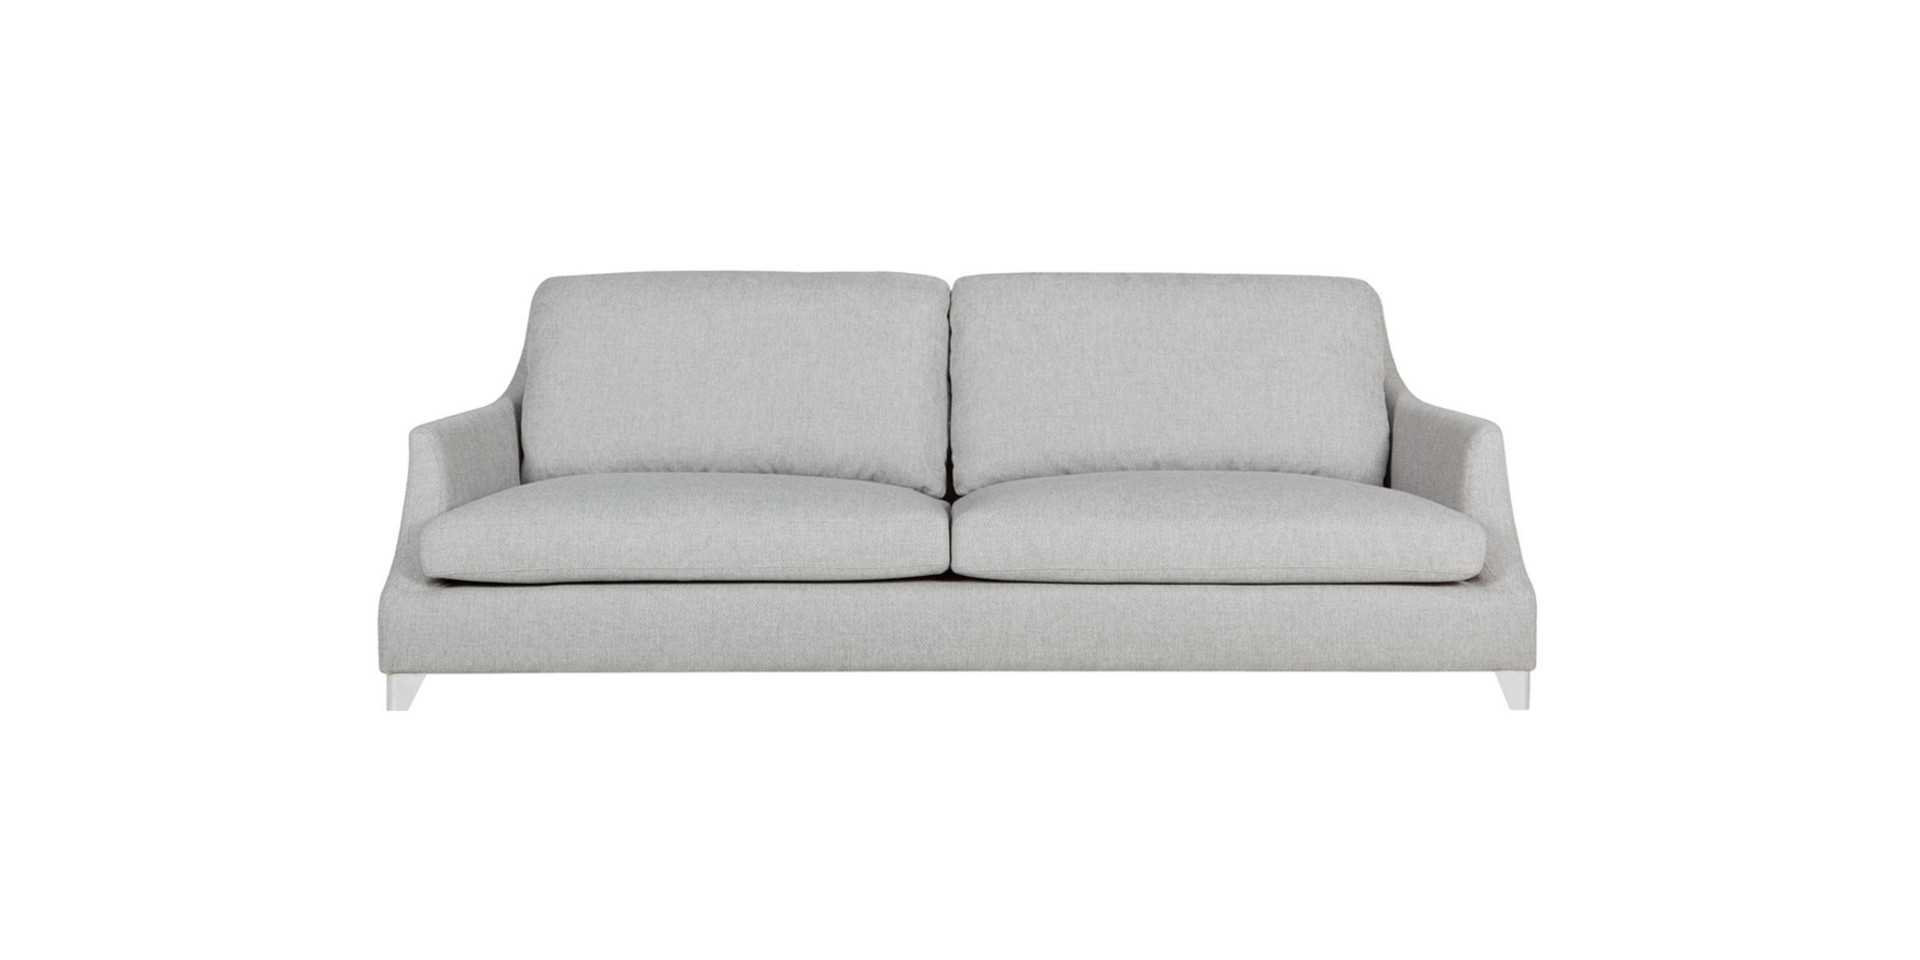 ROSE_3seater_himalaya2_light_grey_1_0